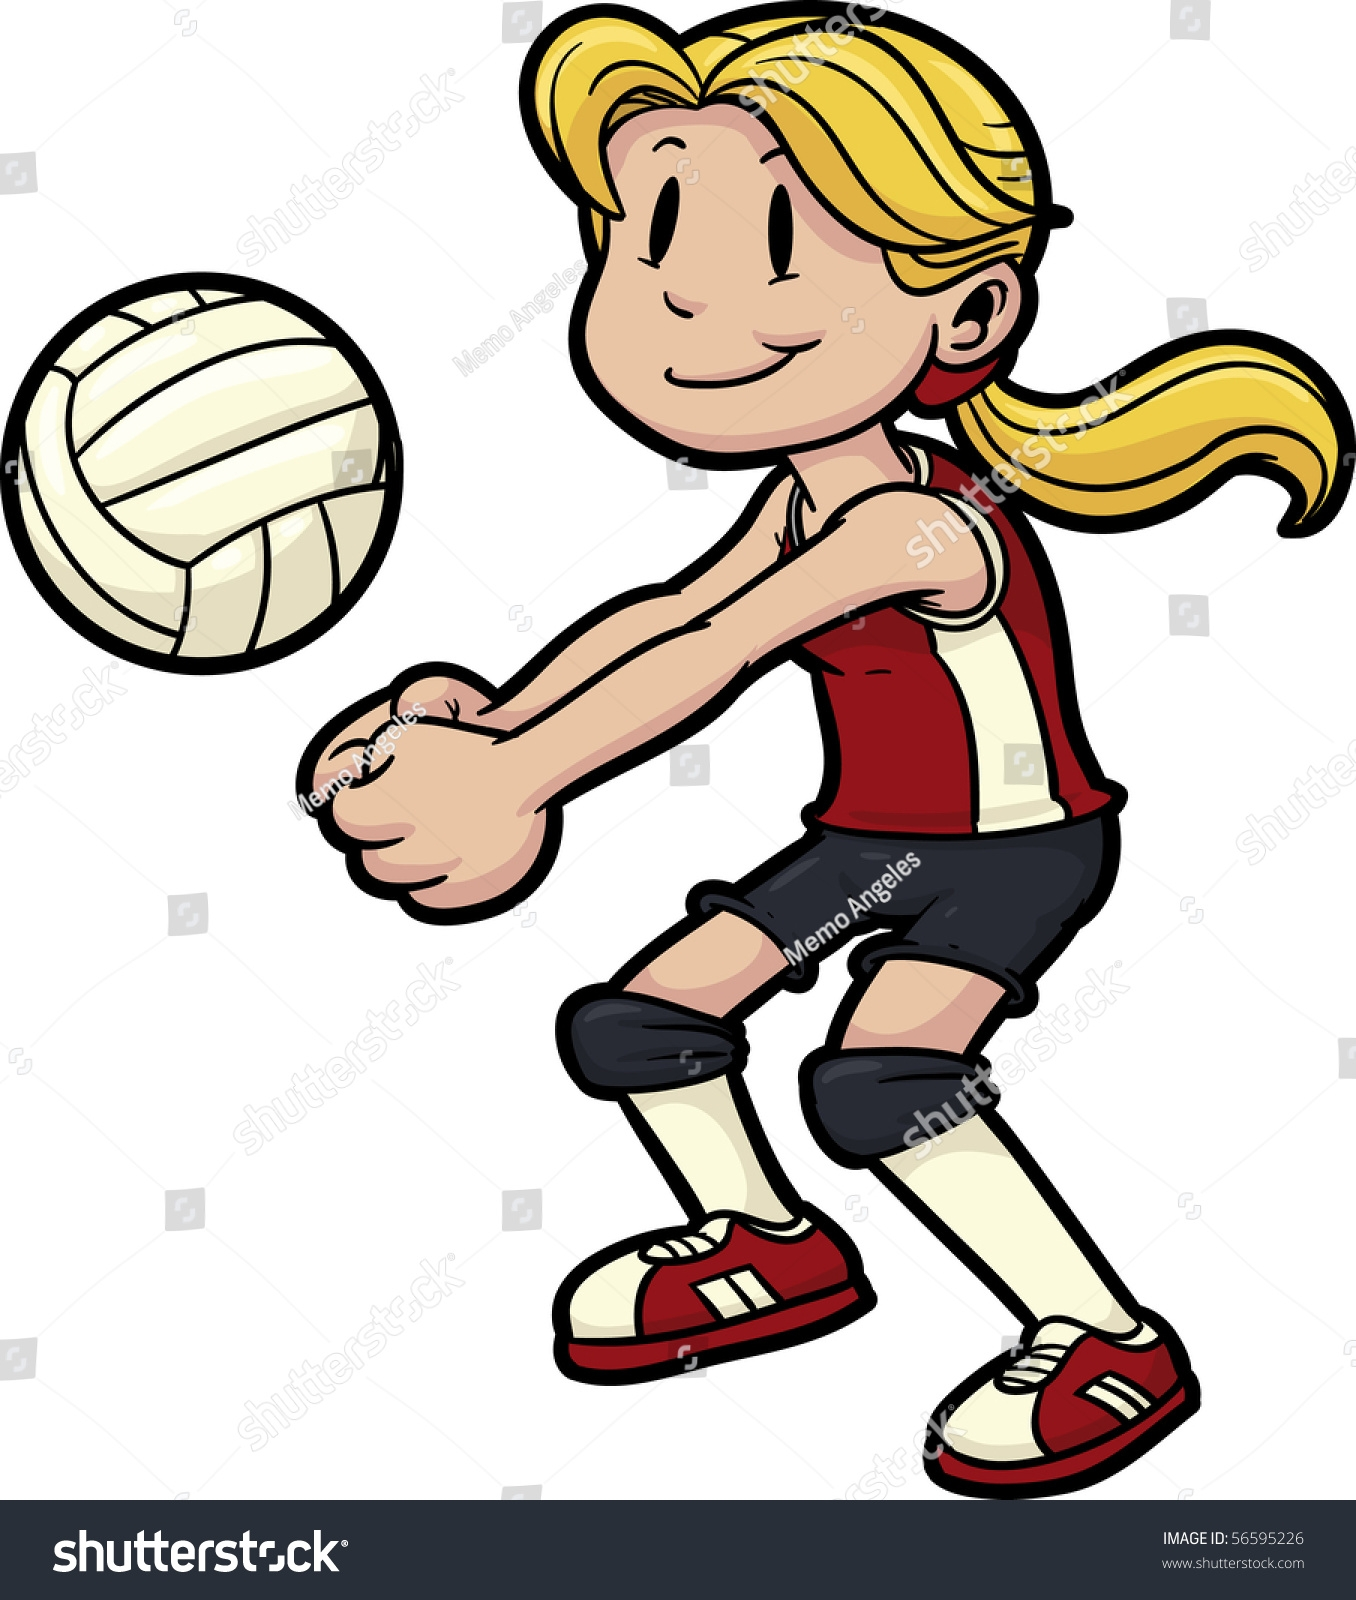 volleyball coloring pages - people playing volleyball clipart